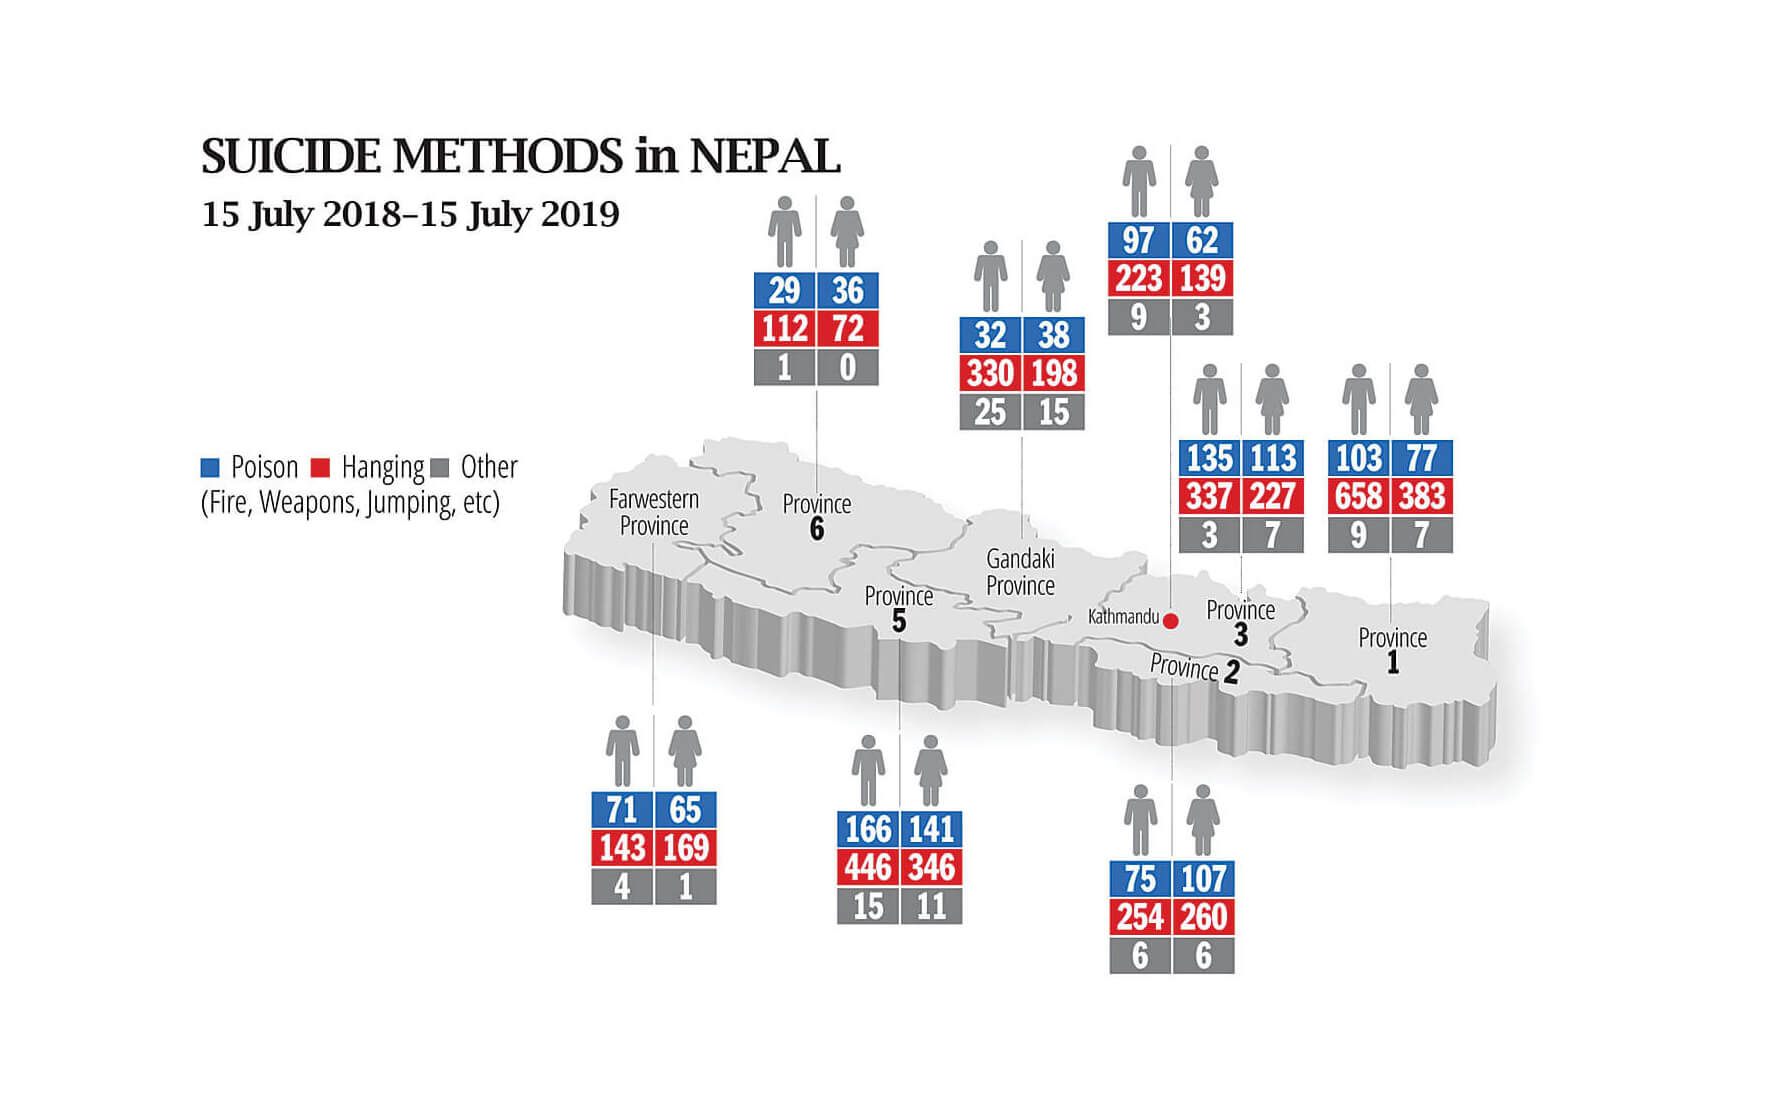 Nepal's suicide rate vastly underestimated